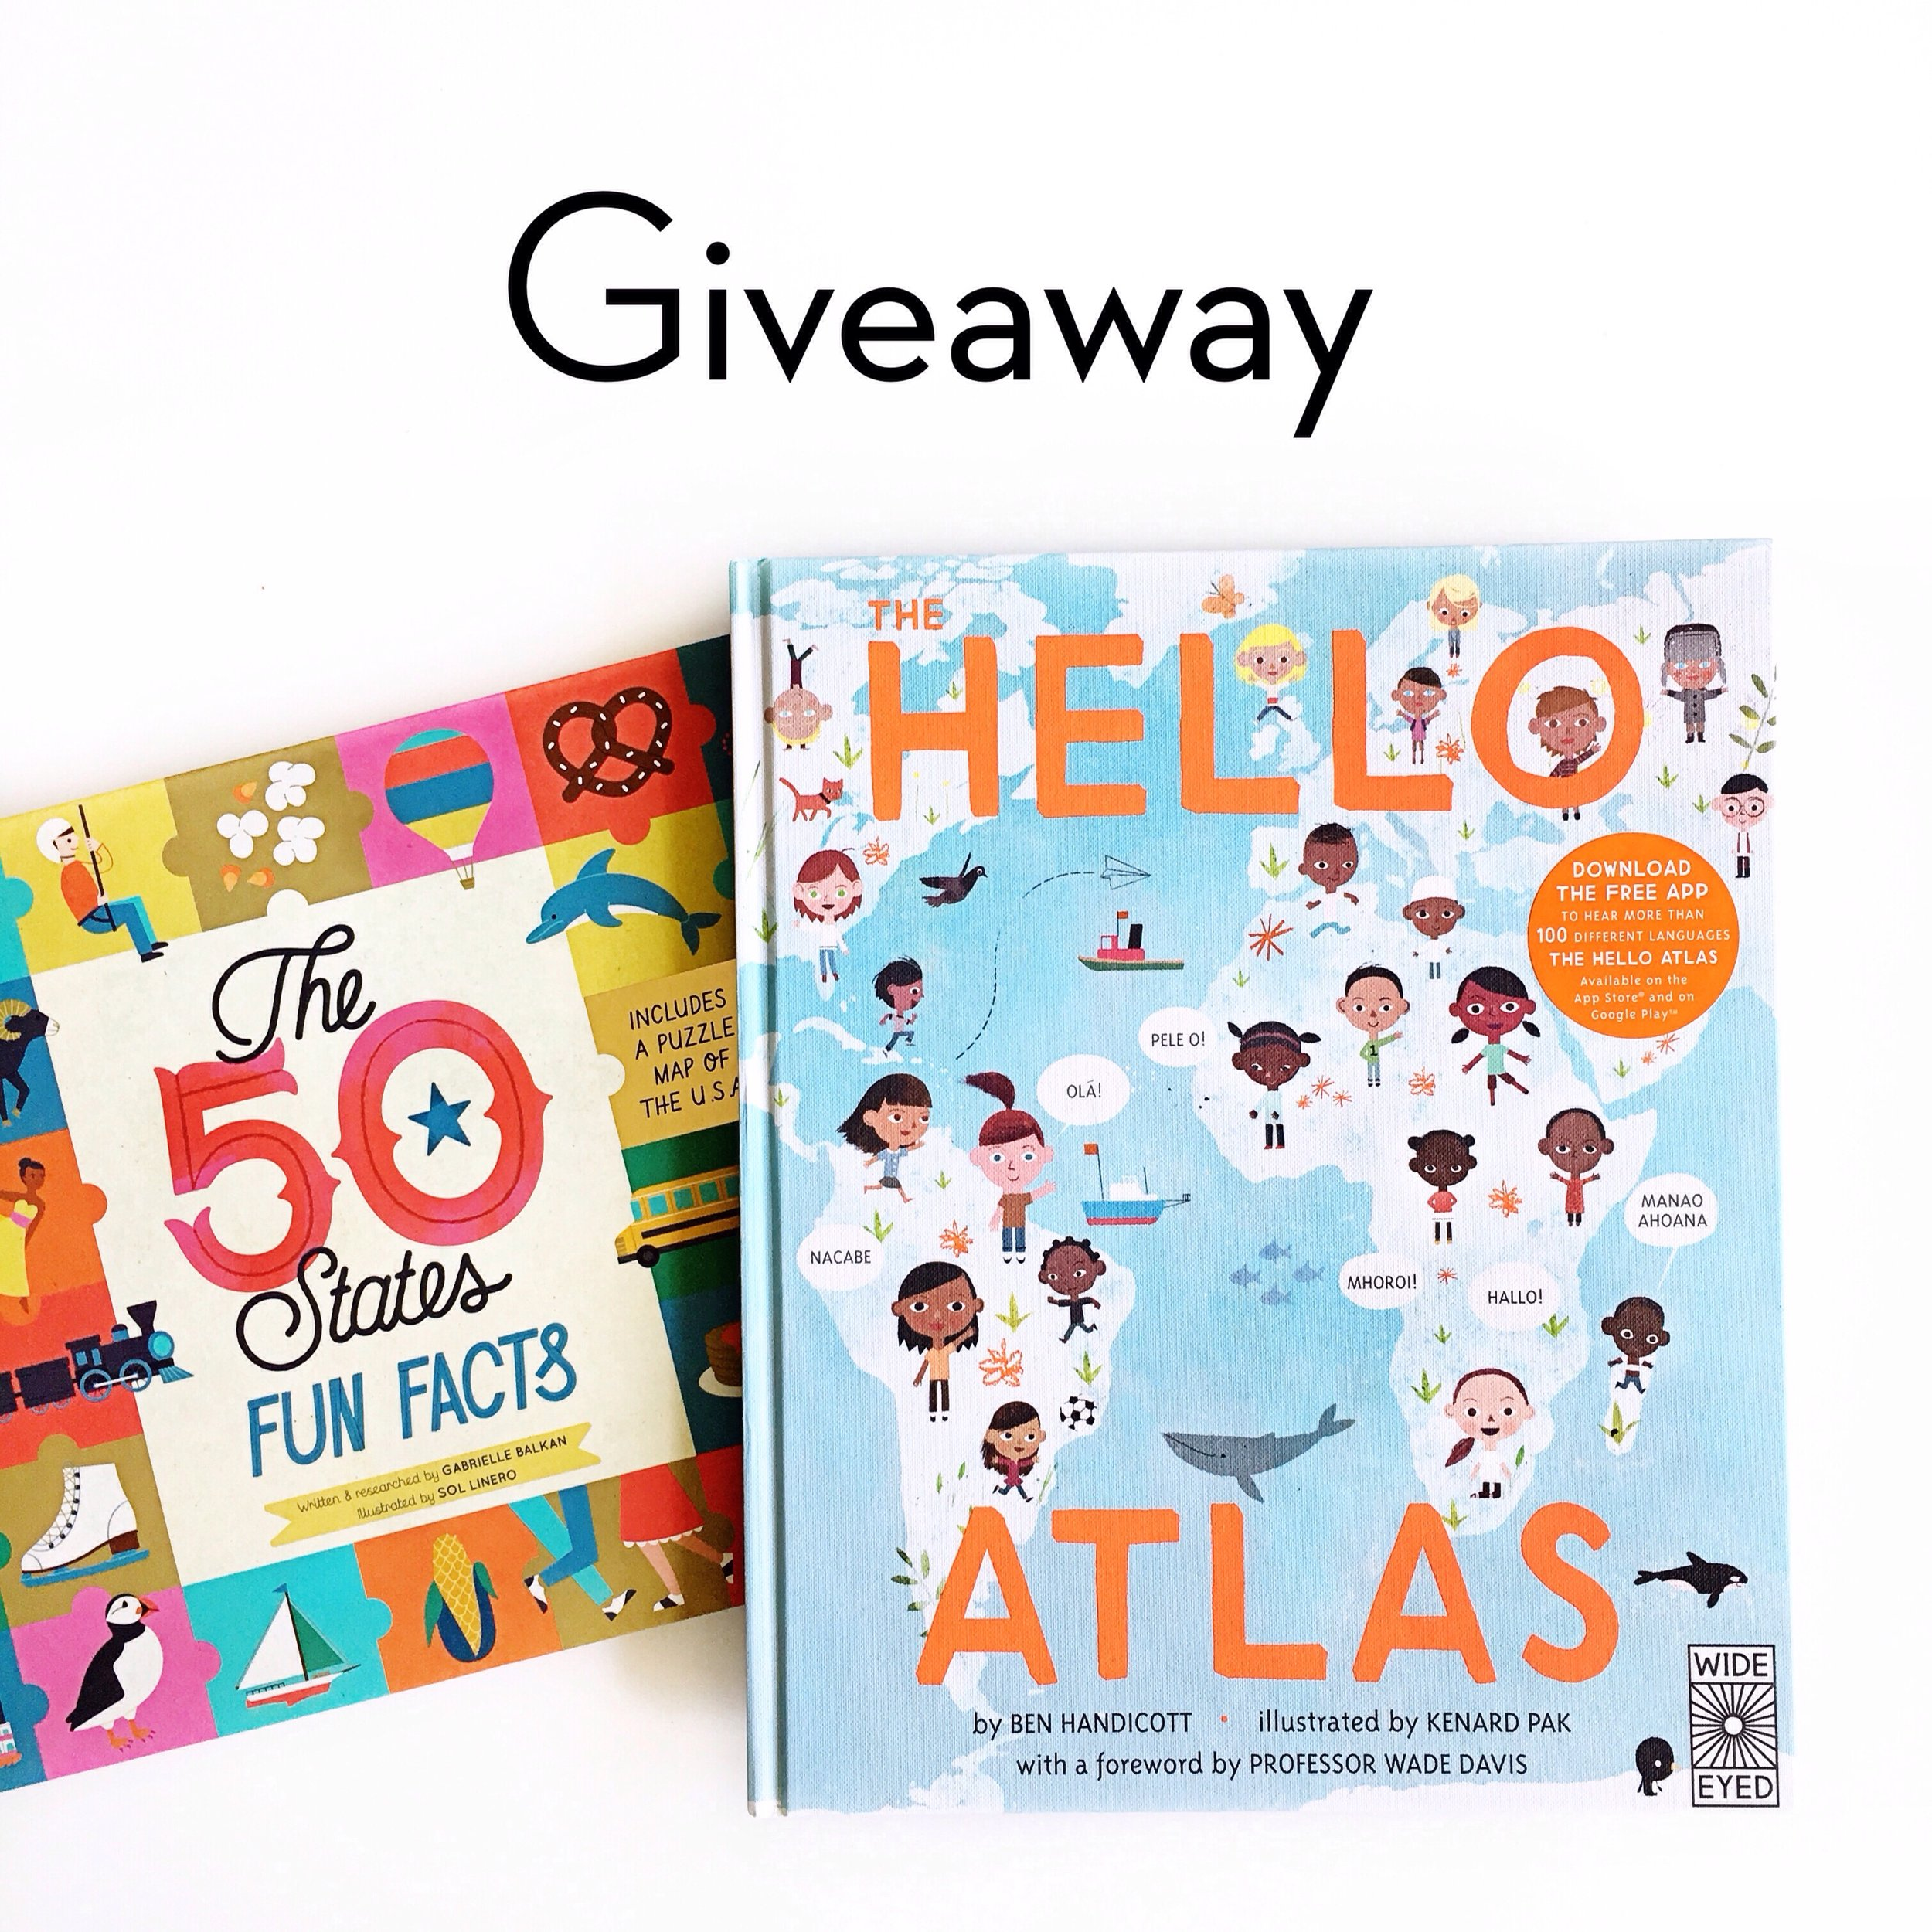 The Hello Atlas and The 50 States: Fun Facts   Little Lit Book Series